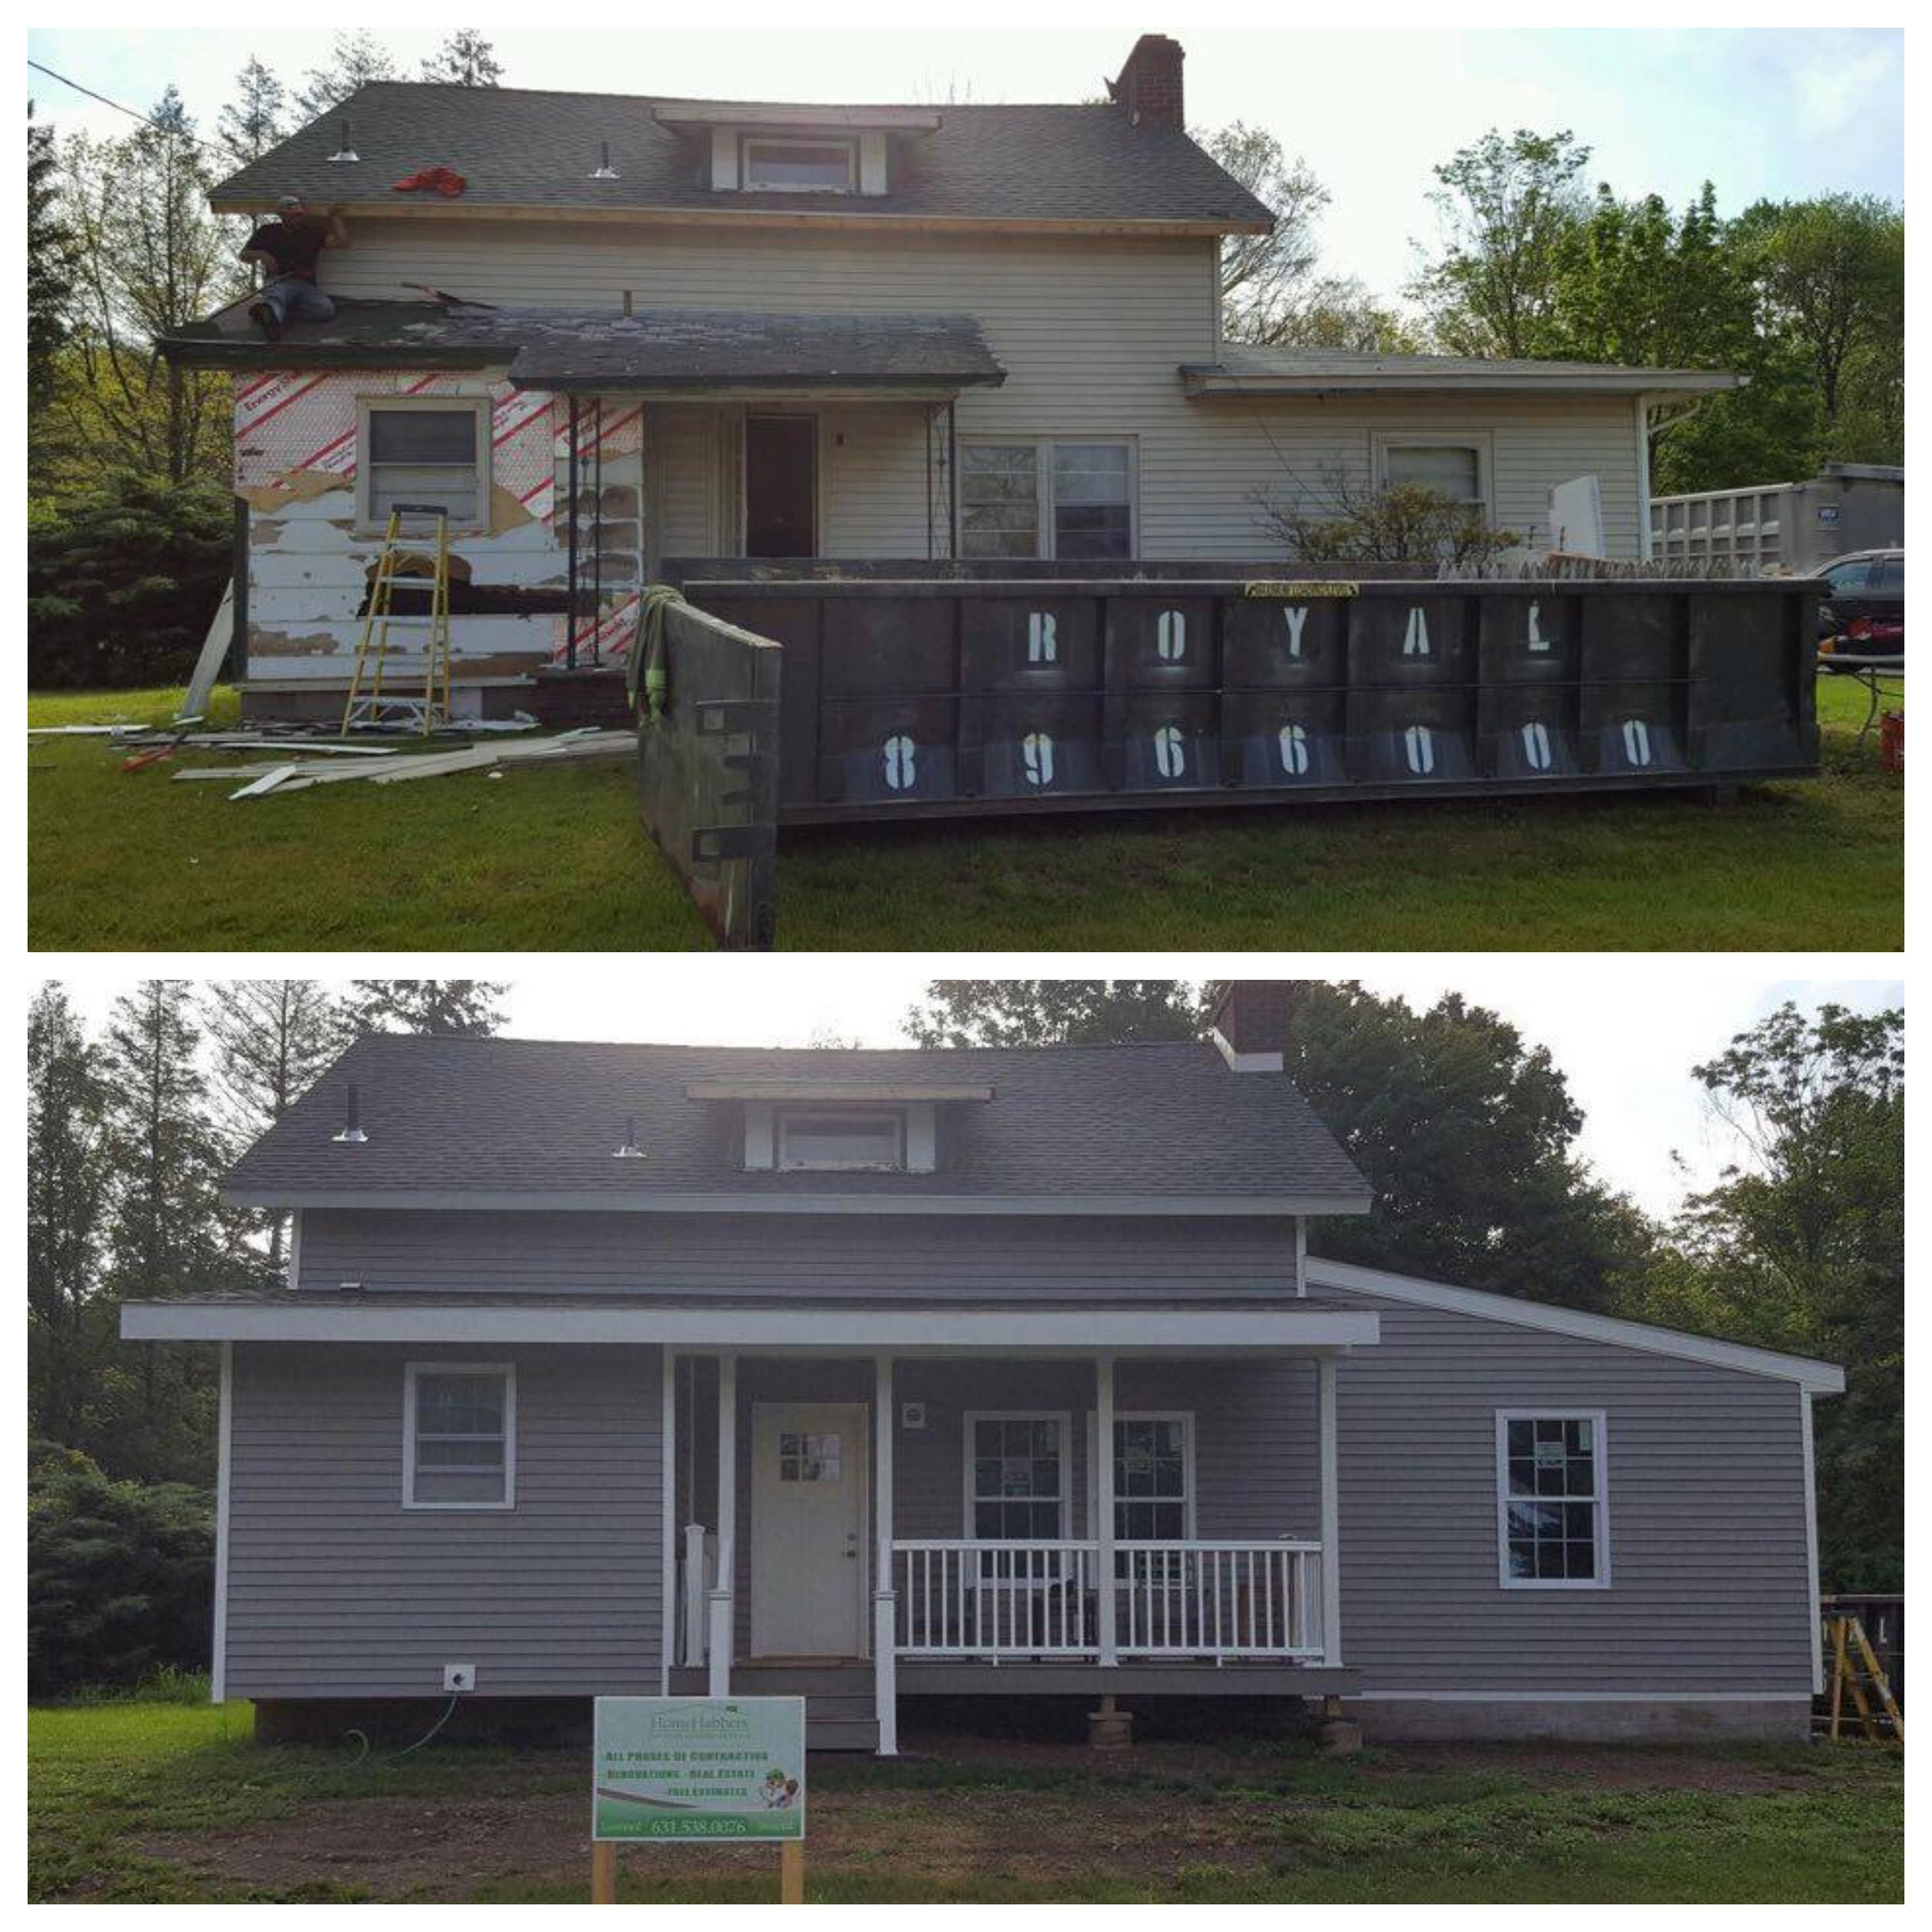 House_Before_After.jpg